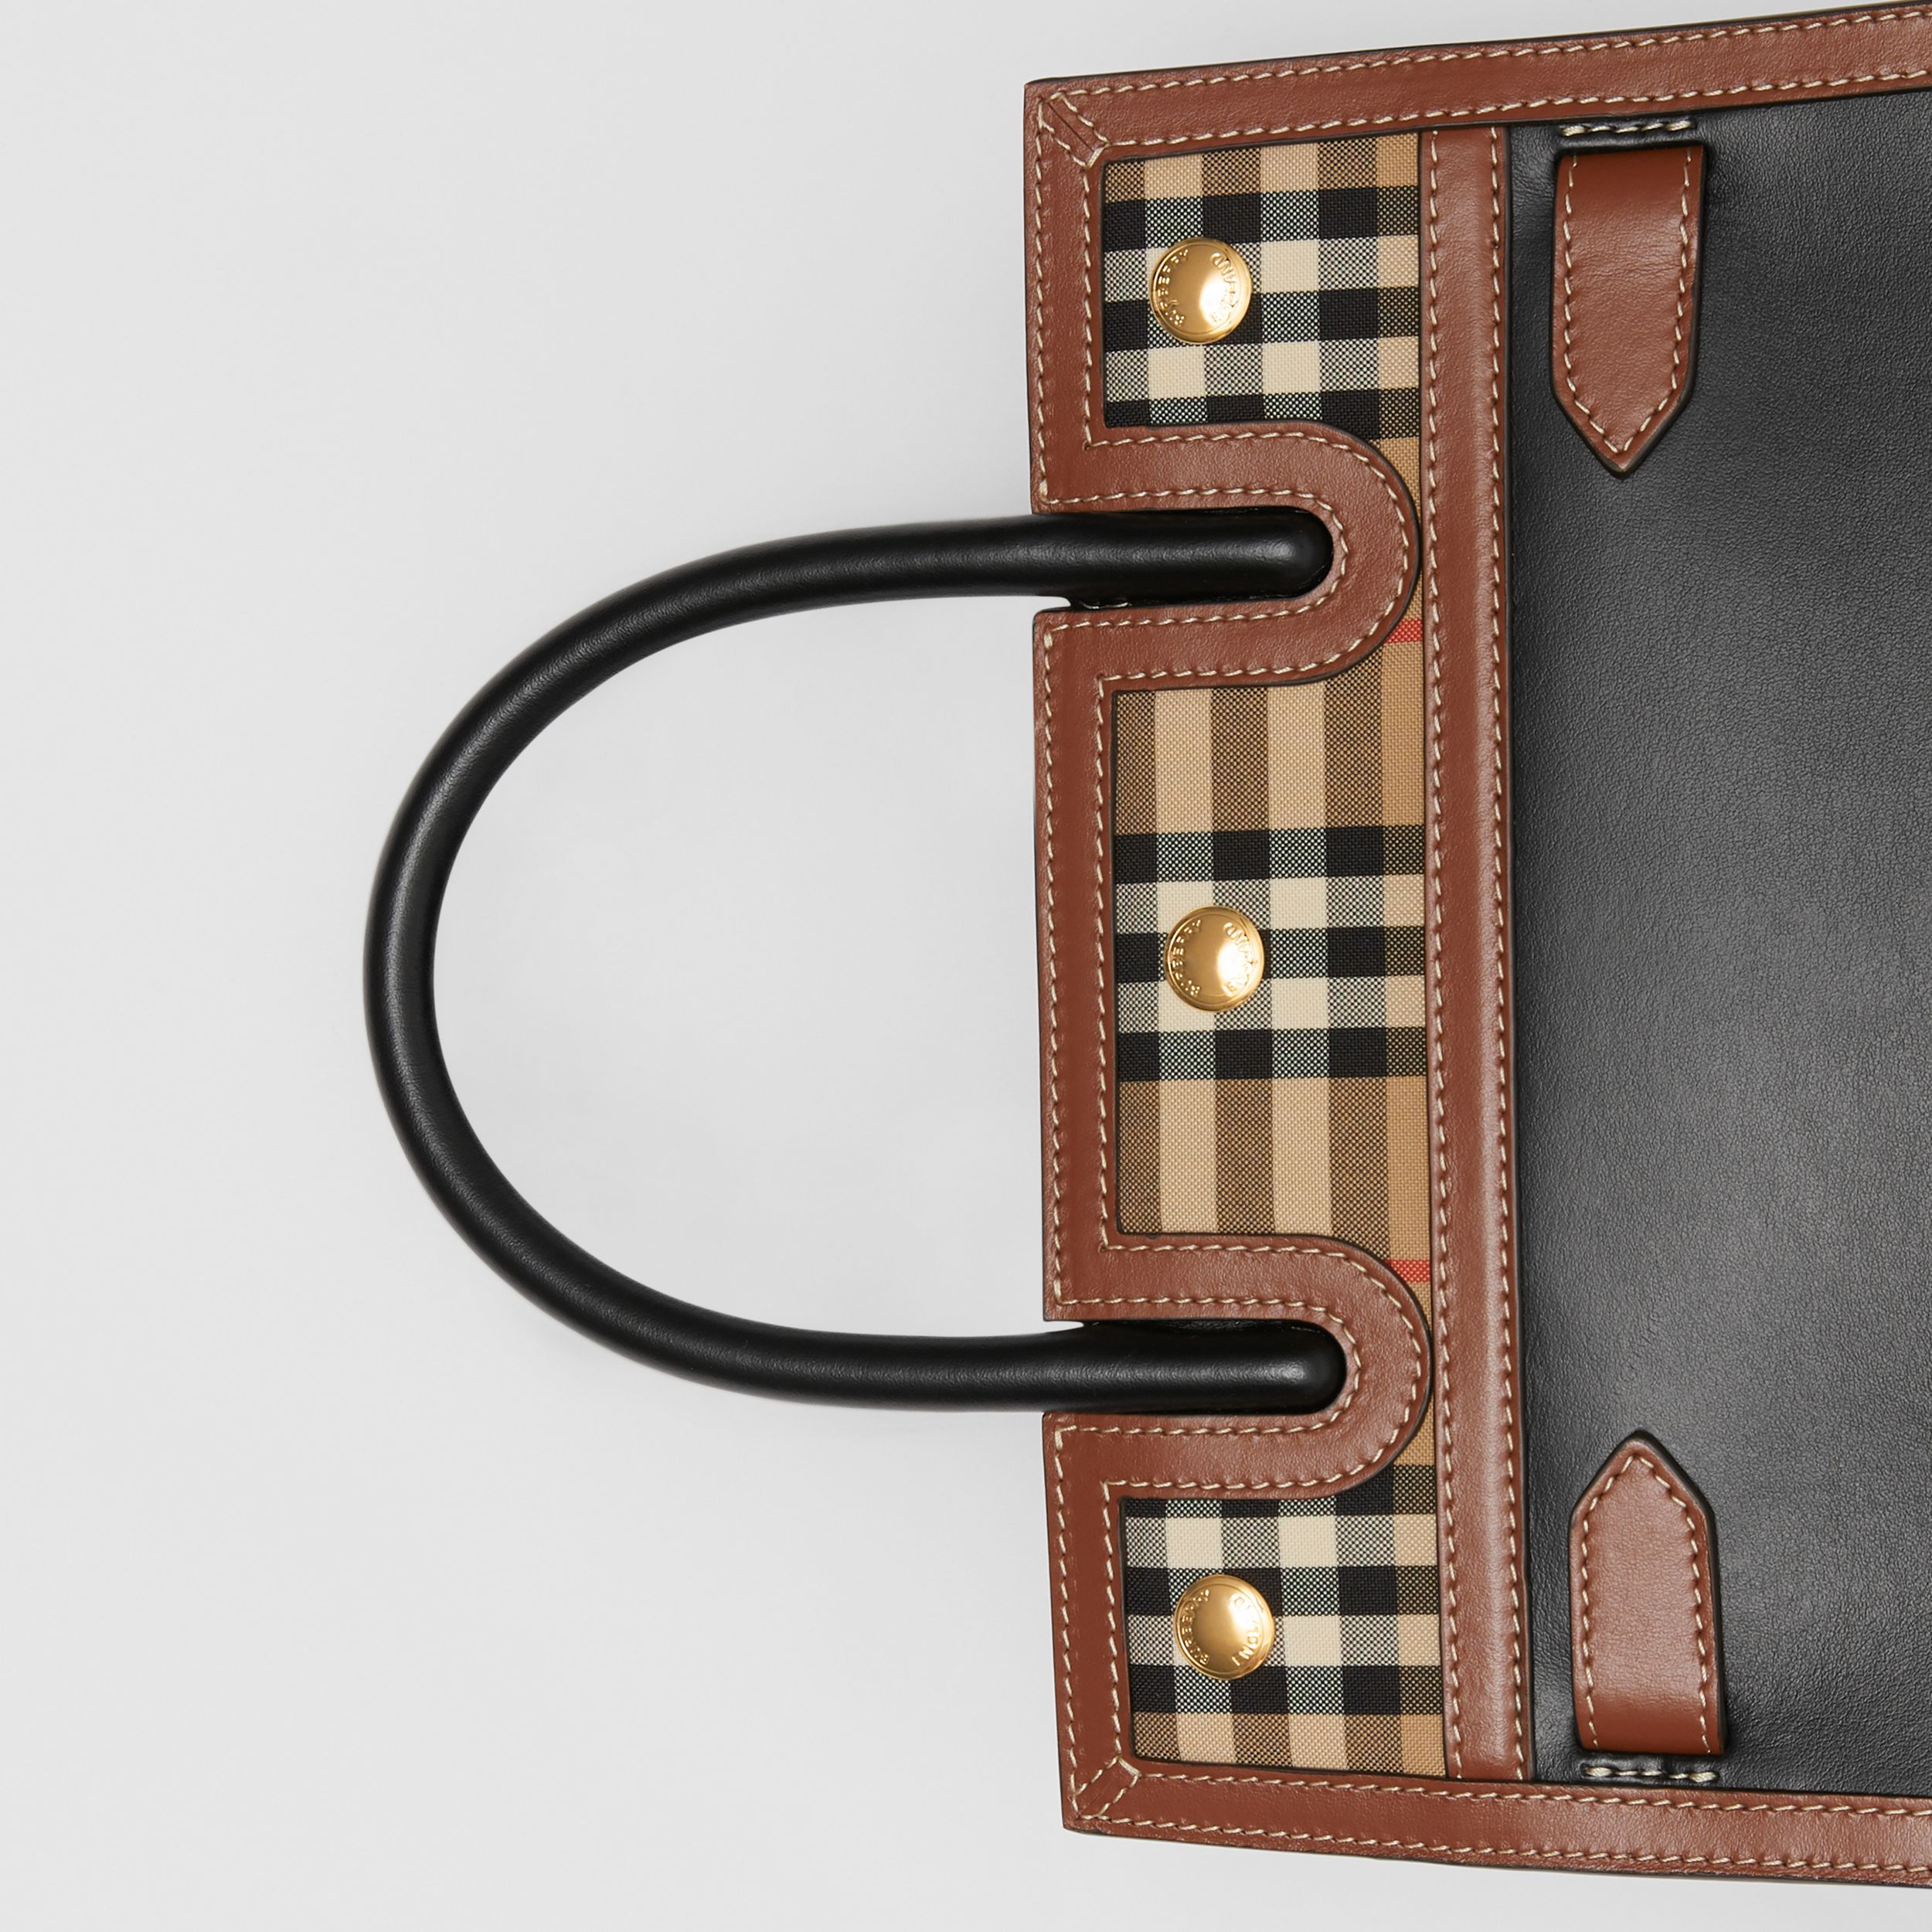 Mini Leather and Vintage Check Two-handle Title Bag in Black - Women | Burberry United Kingdom - 2